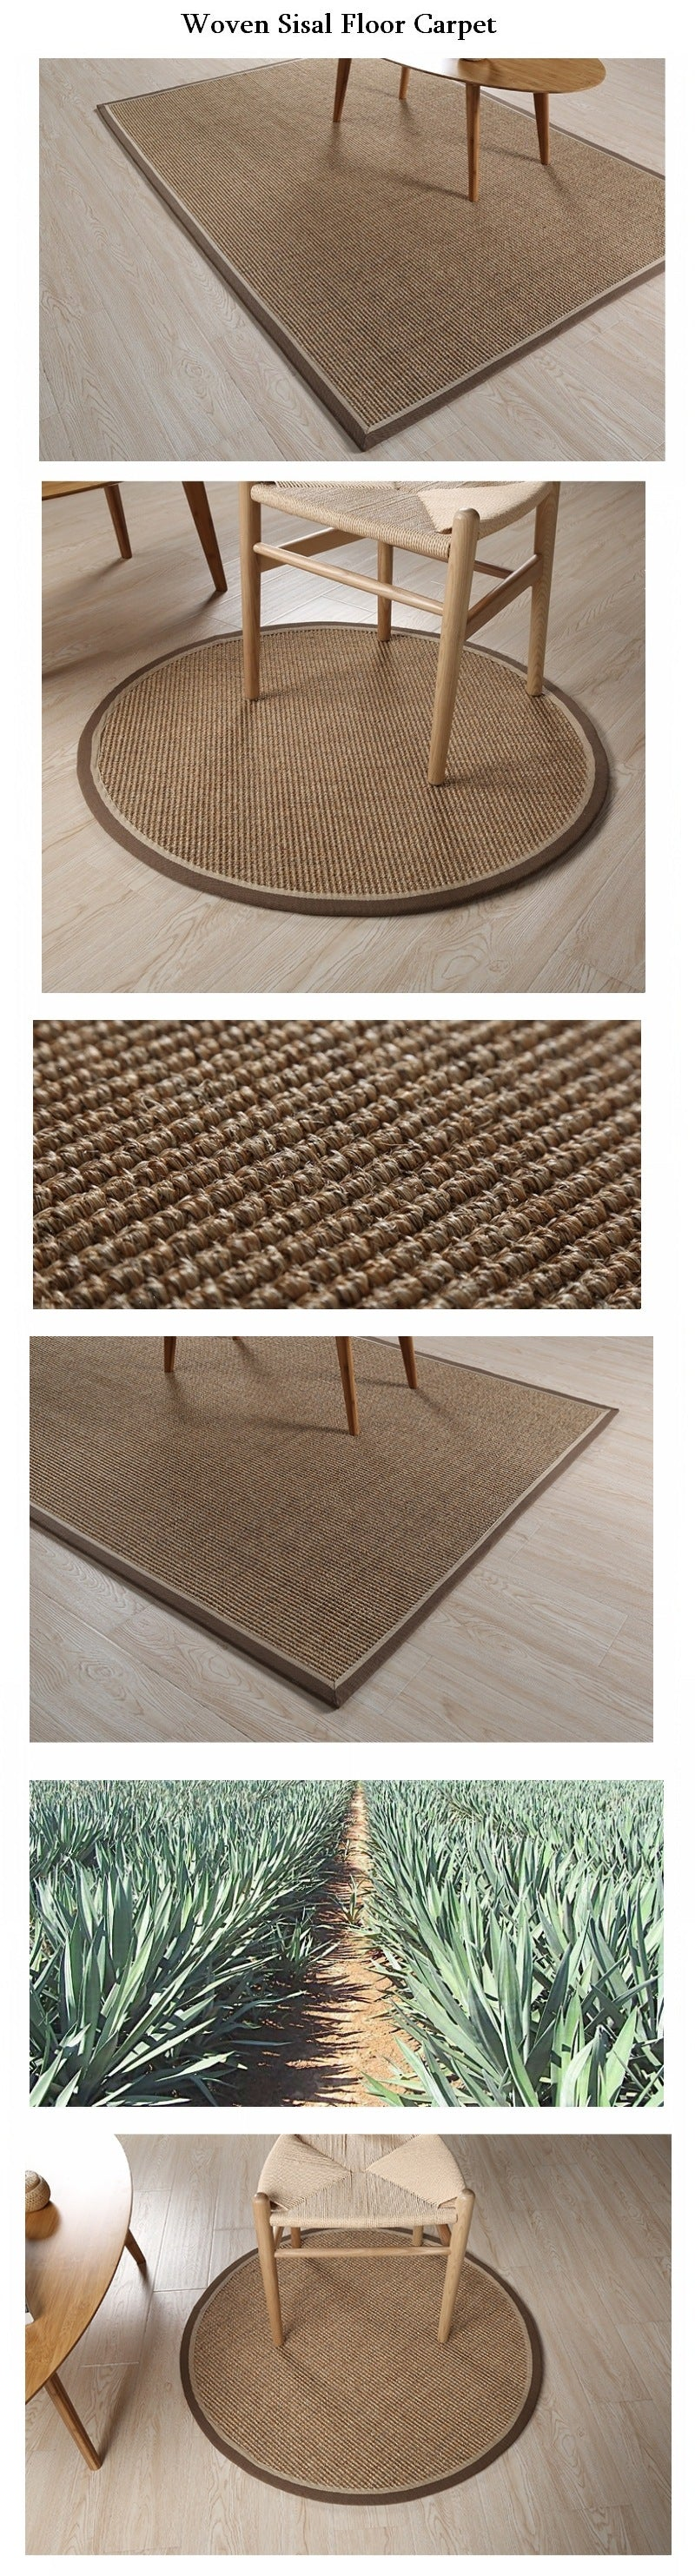 Large Sisal Carpet, Woven Floor Carpet, Floor Carpet and Rugs